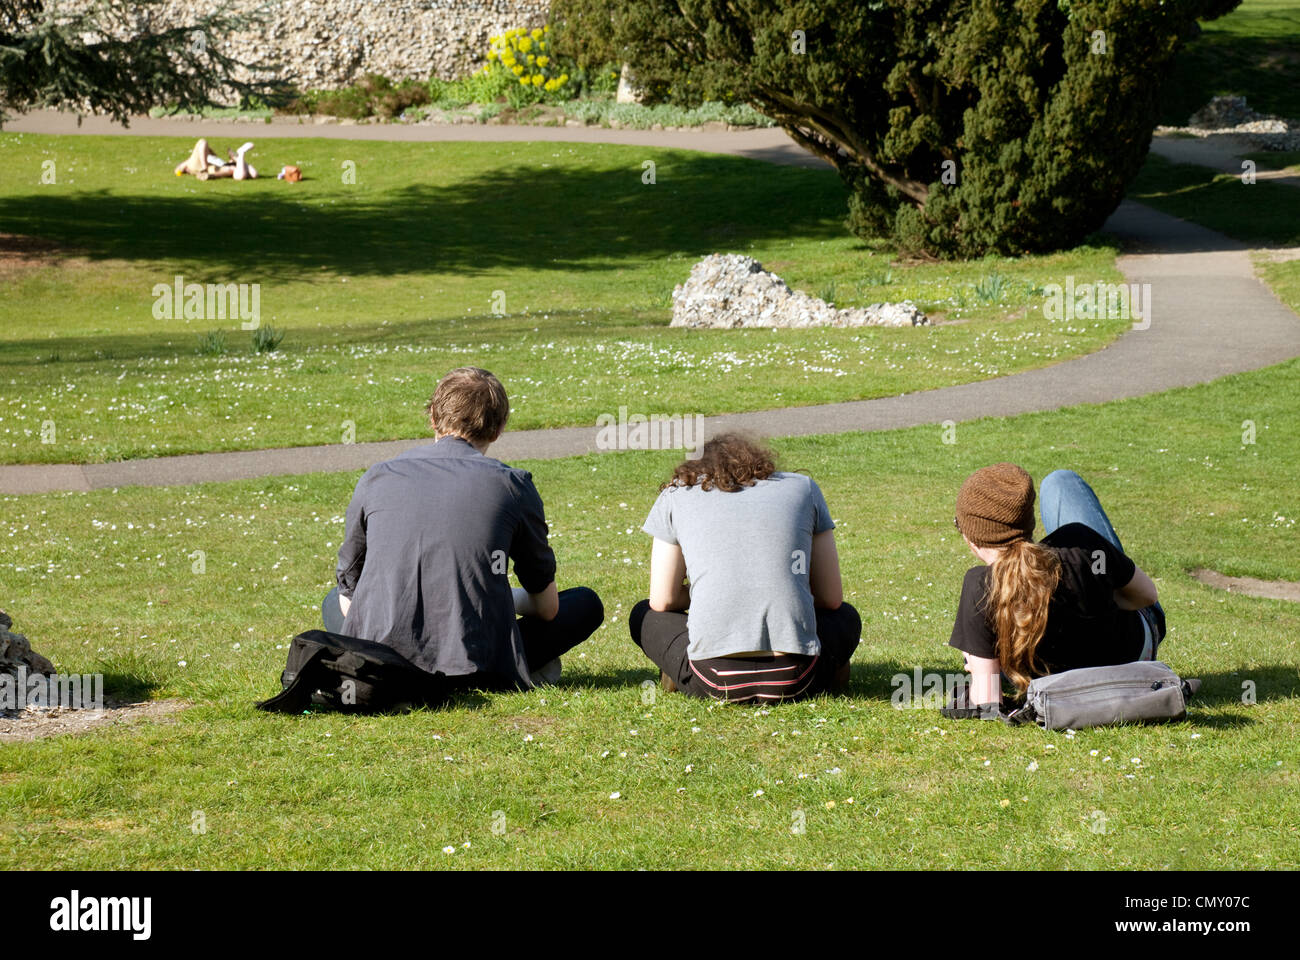 Three teenage boys sitting in the park, rear view, Abbey Gardens Bury St Edmunds Suffolk UK - Stock Image